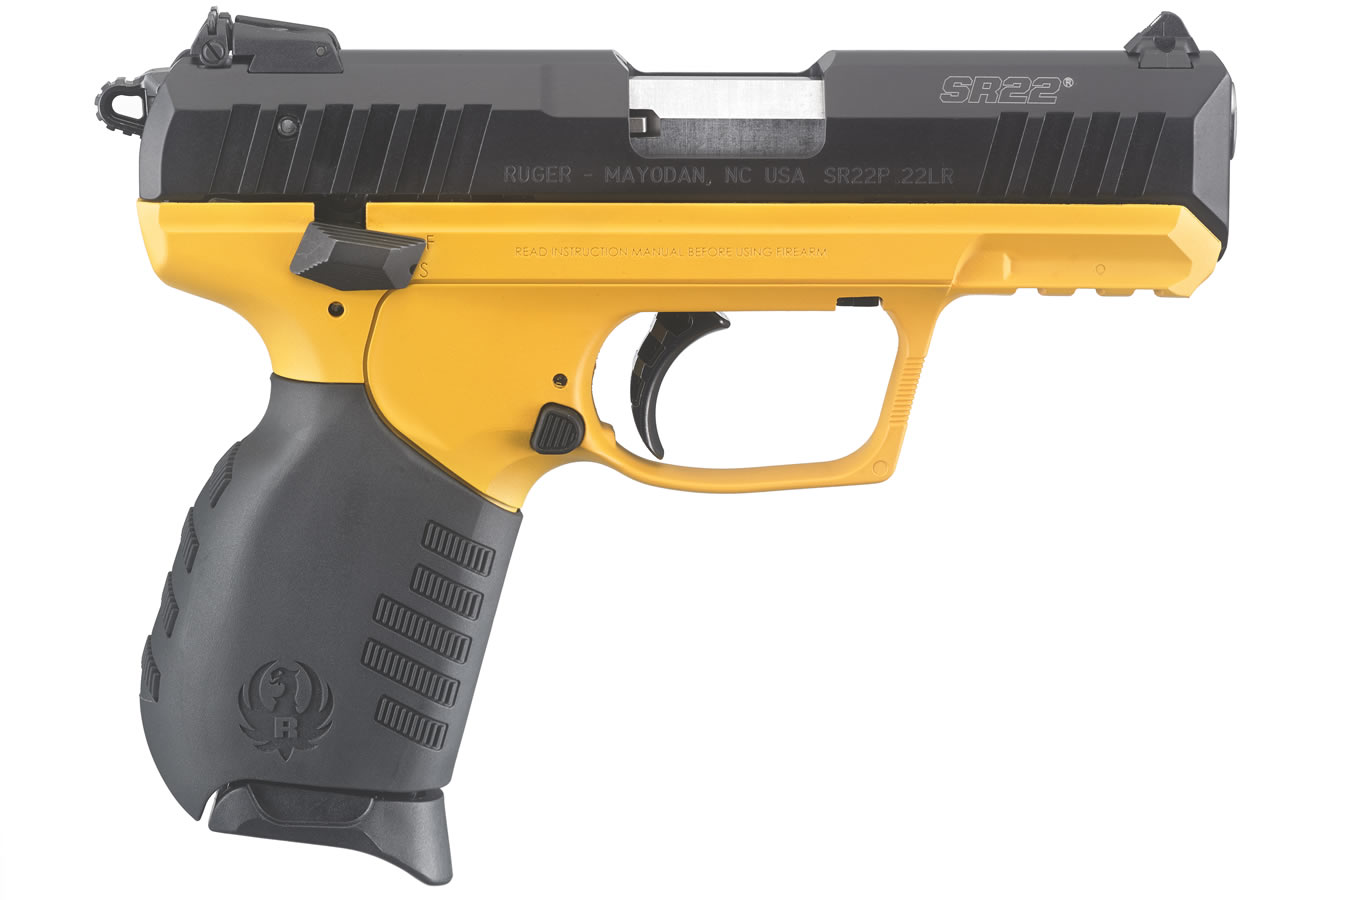 Ruger SR22 22LR Rimfire Pistol with Contractor Yellow Grip Frame ...